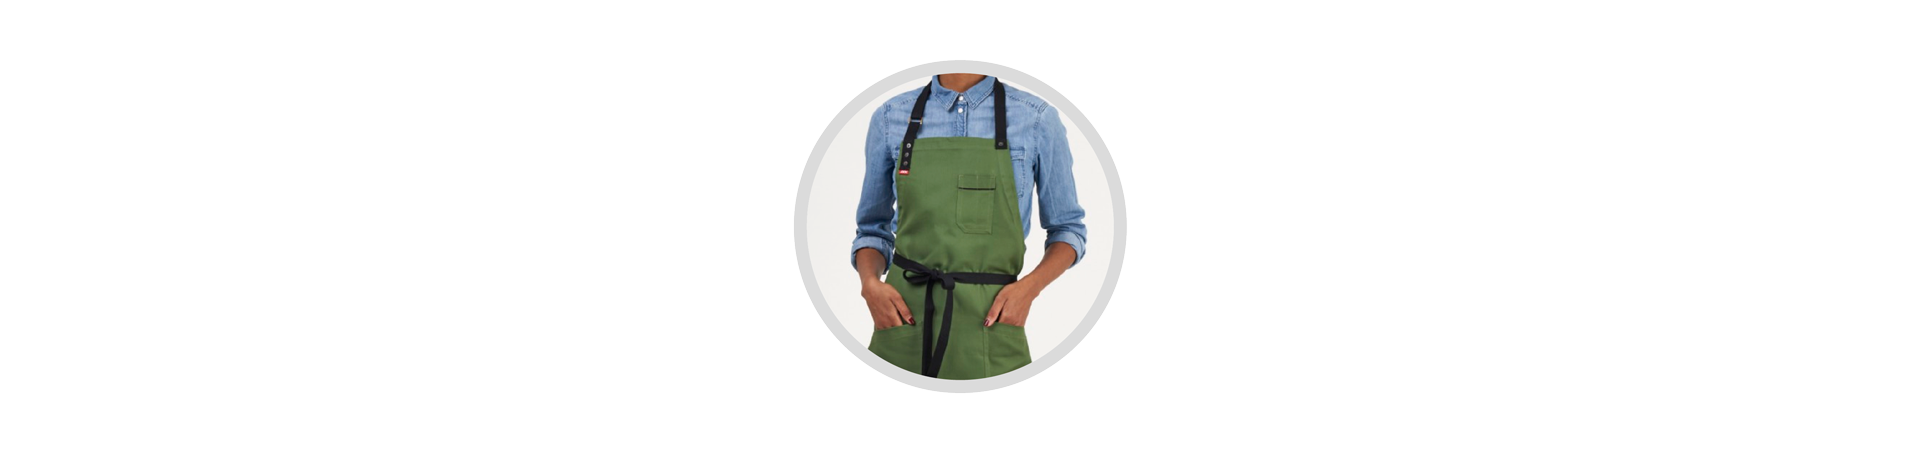 Modern and fashion apron for chef and restaurant